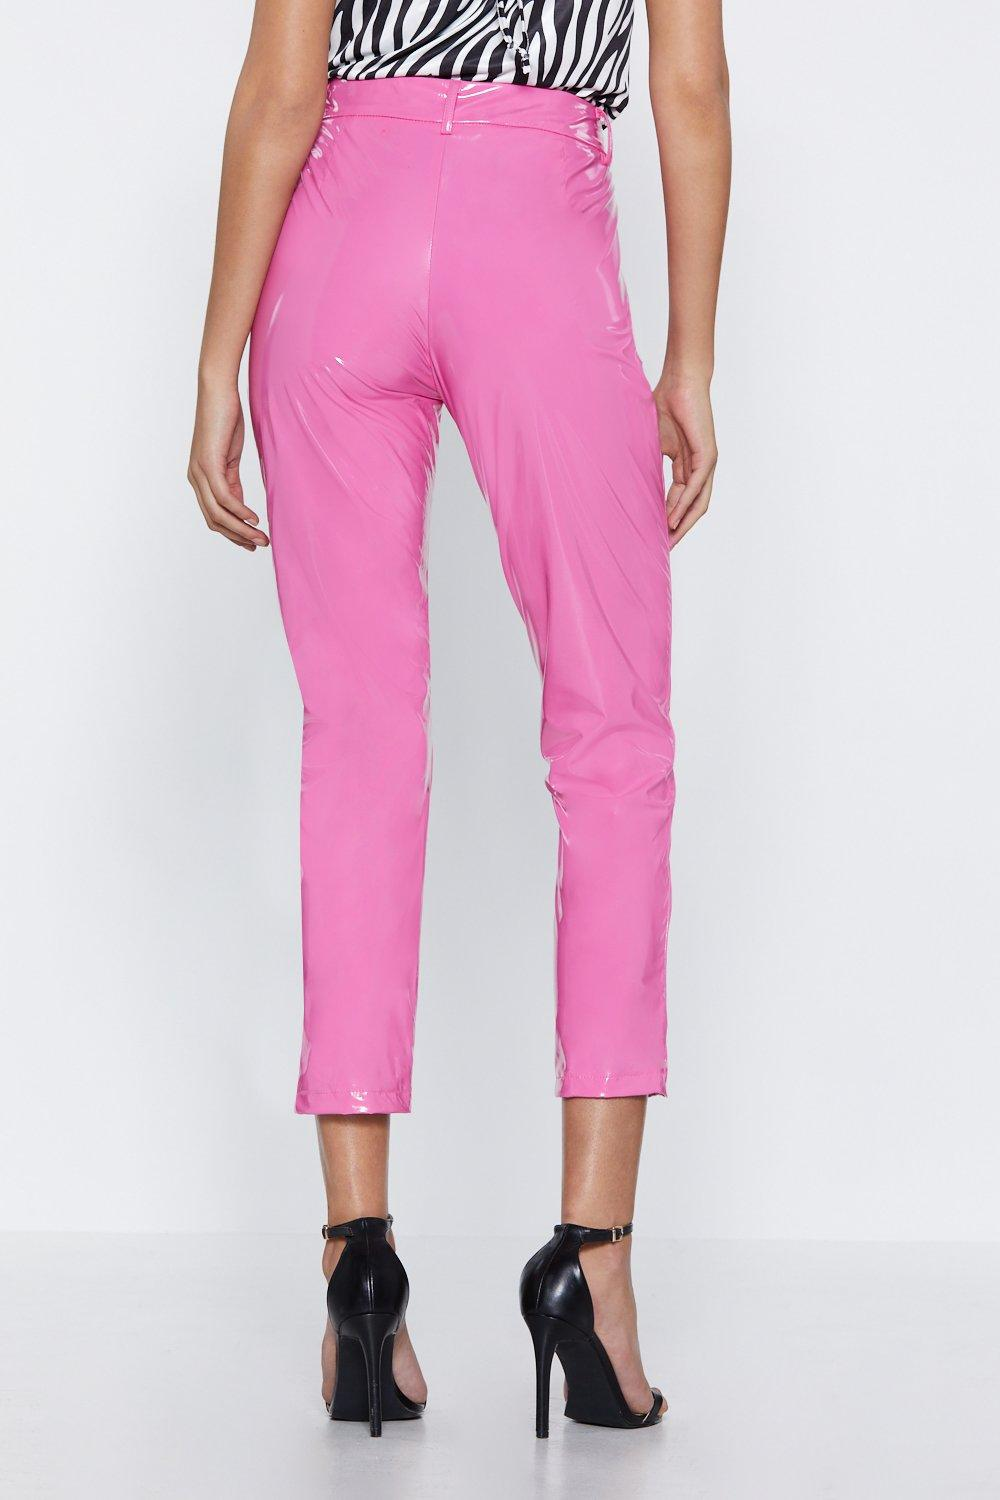 1dc27d2bca9185 Hot in Here Faux Leather Pants | Shop Clothes at Nasty Gal!